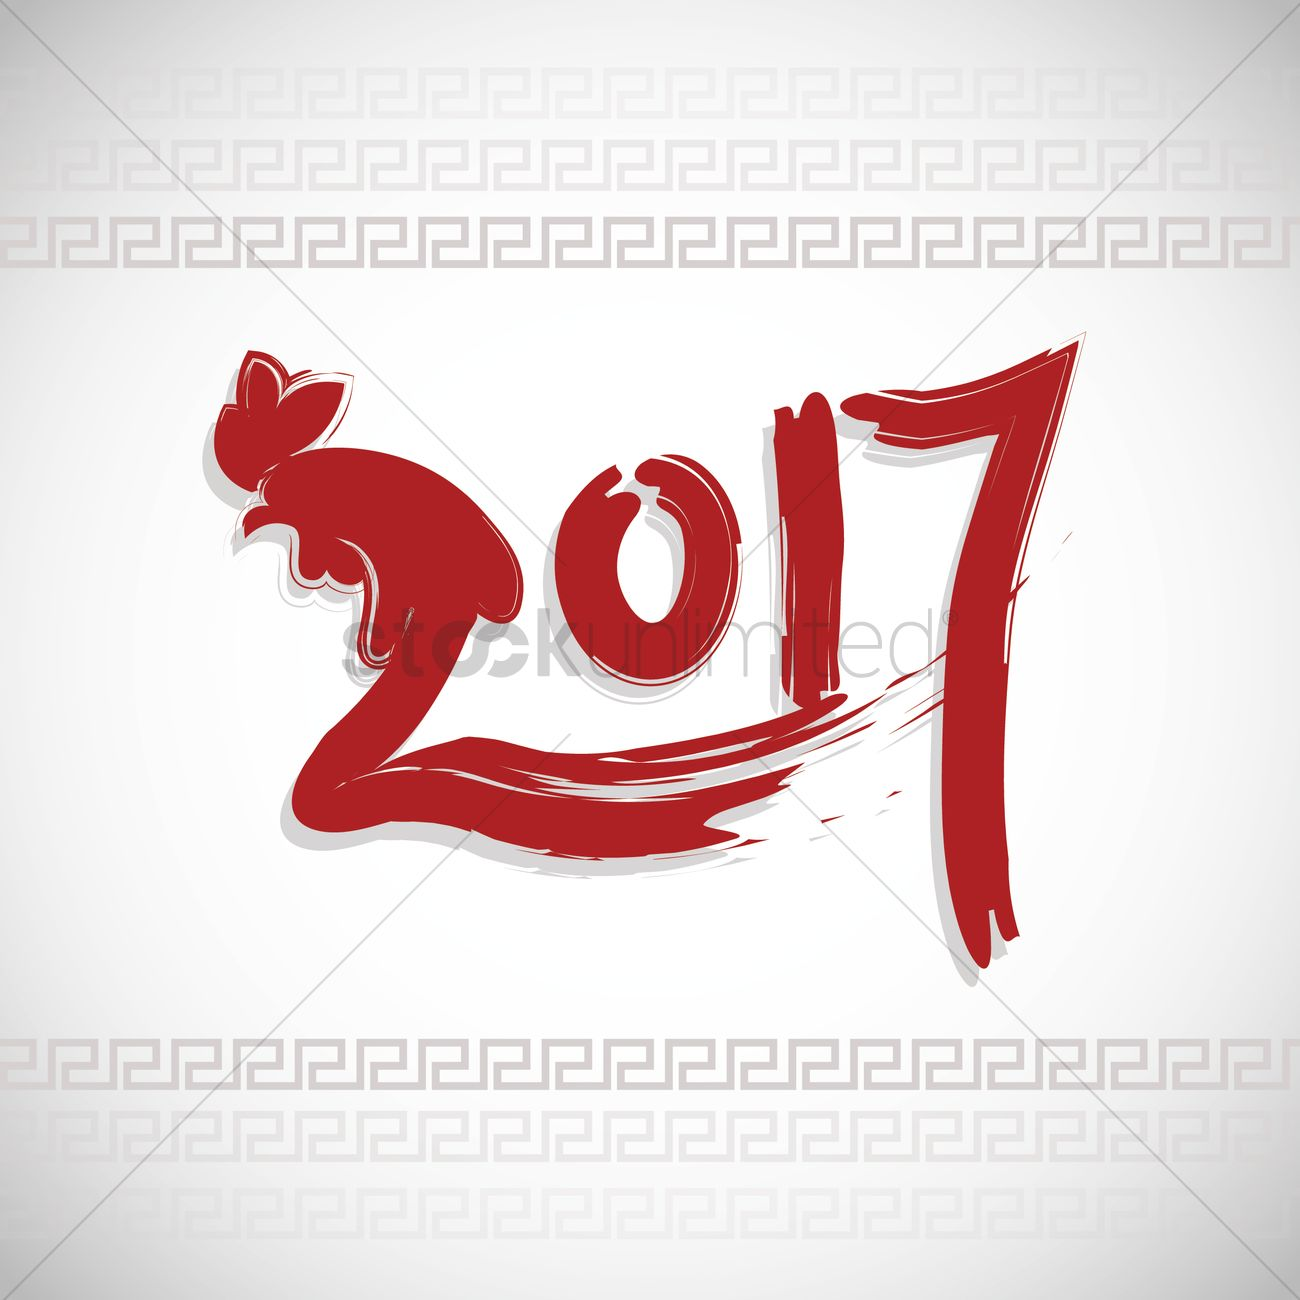 2017 rooster design vector image 1935109 stockunlimited 2017 rooster design vector graphic biocorpaavc